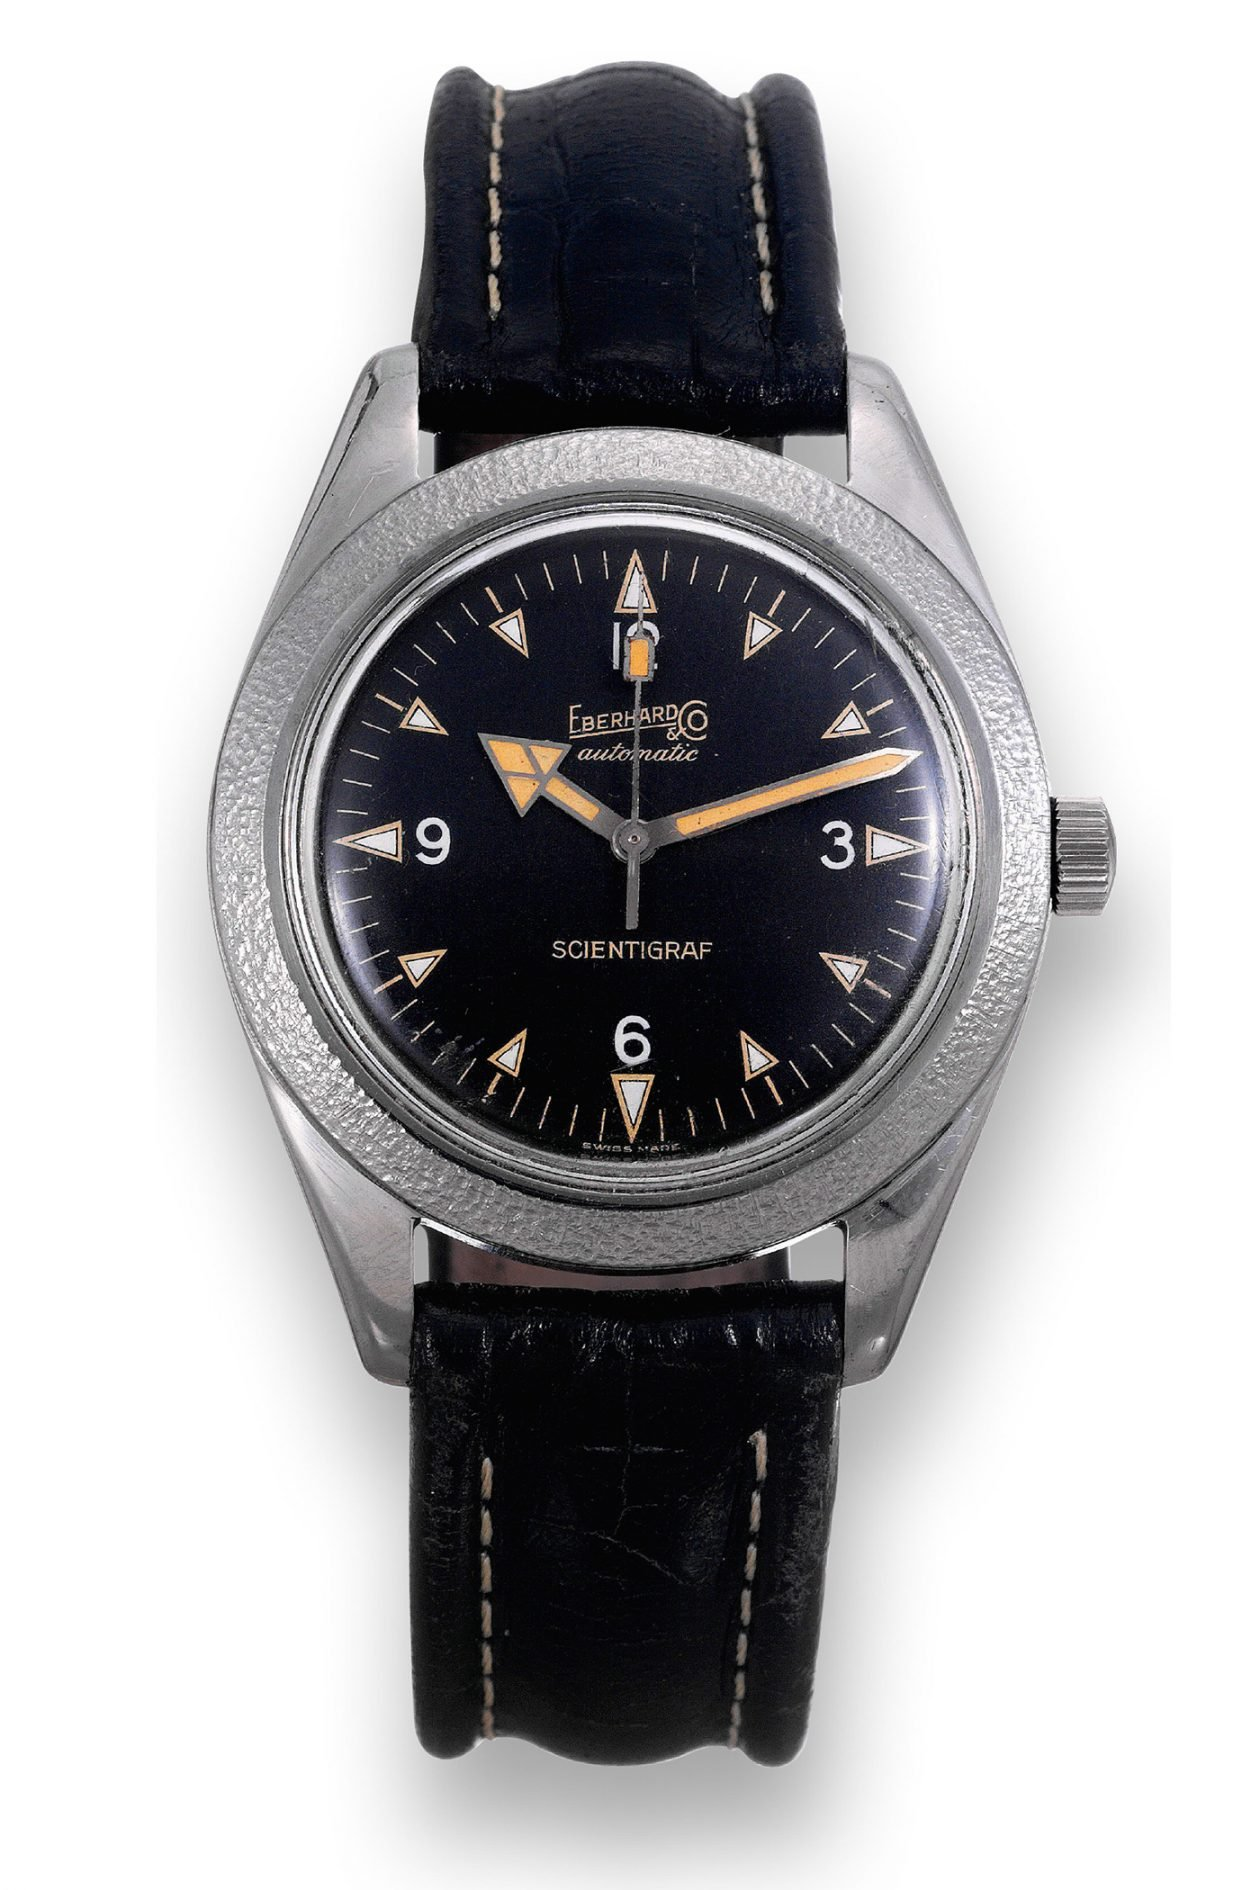 Eberhard & Co. Scientigraf / foto: Antiquorum